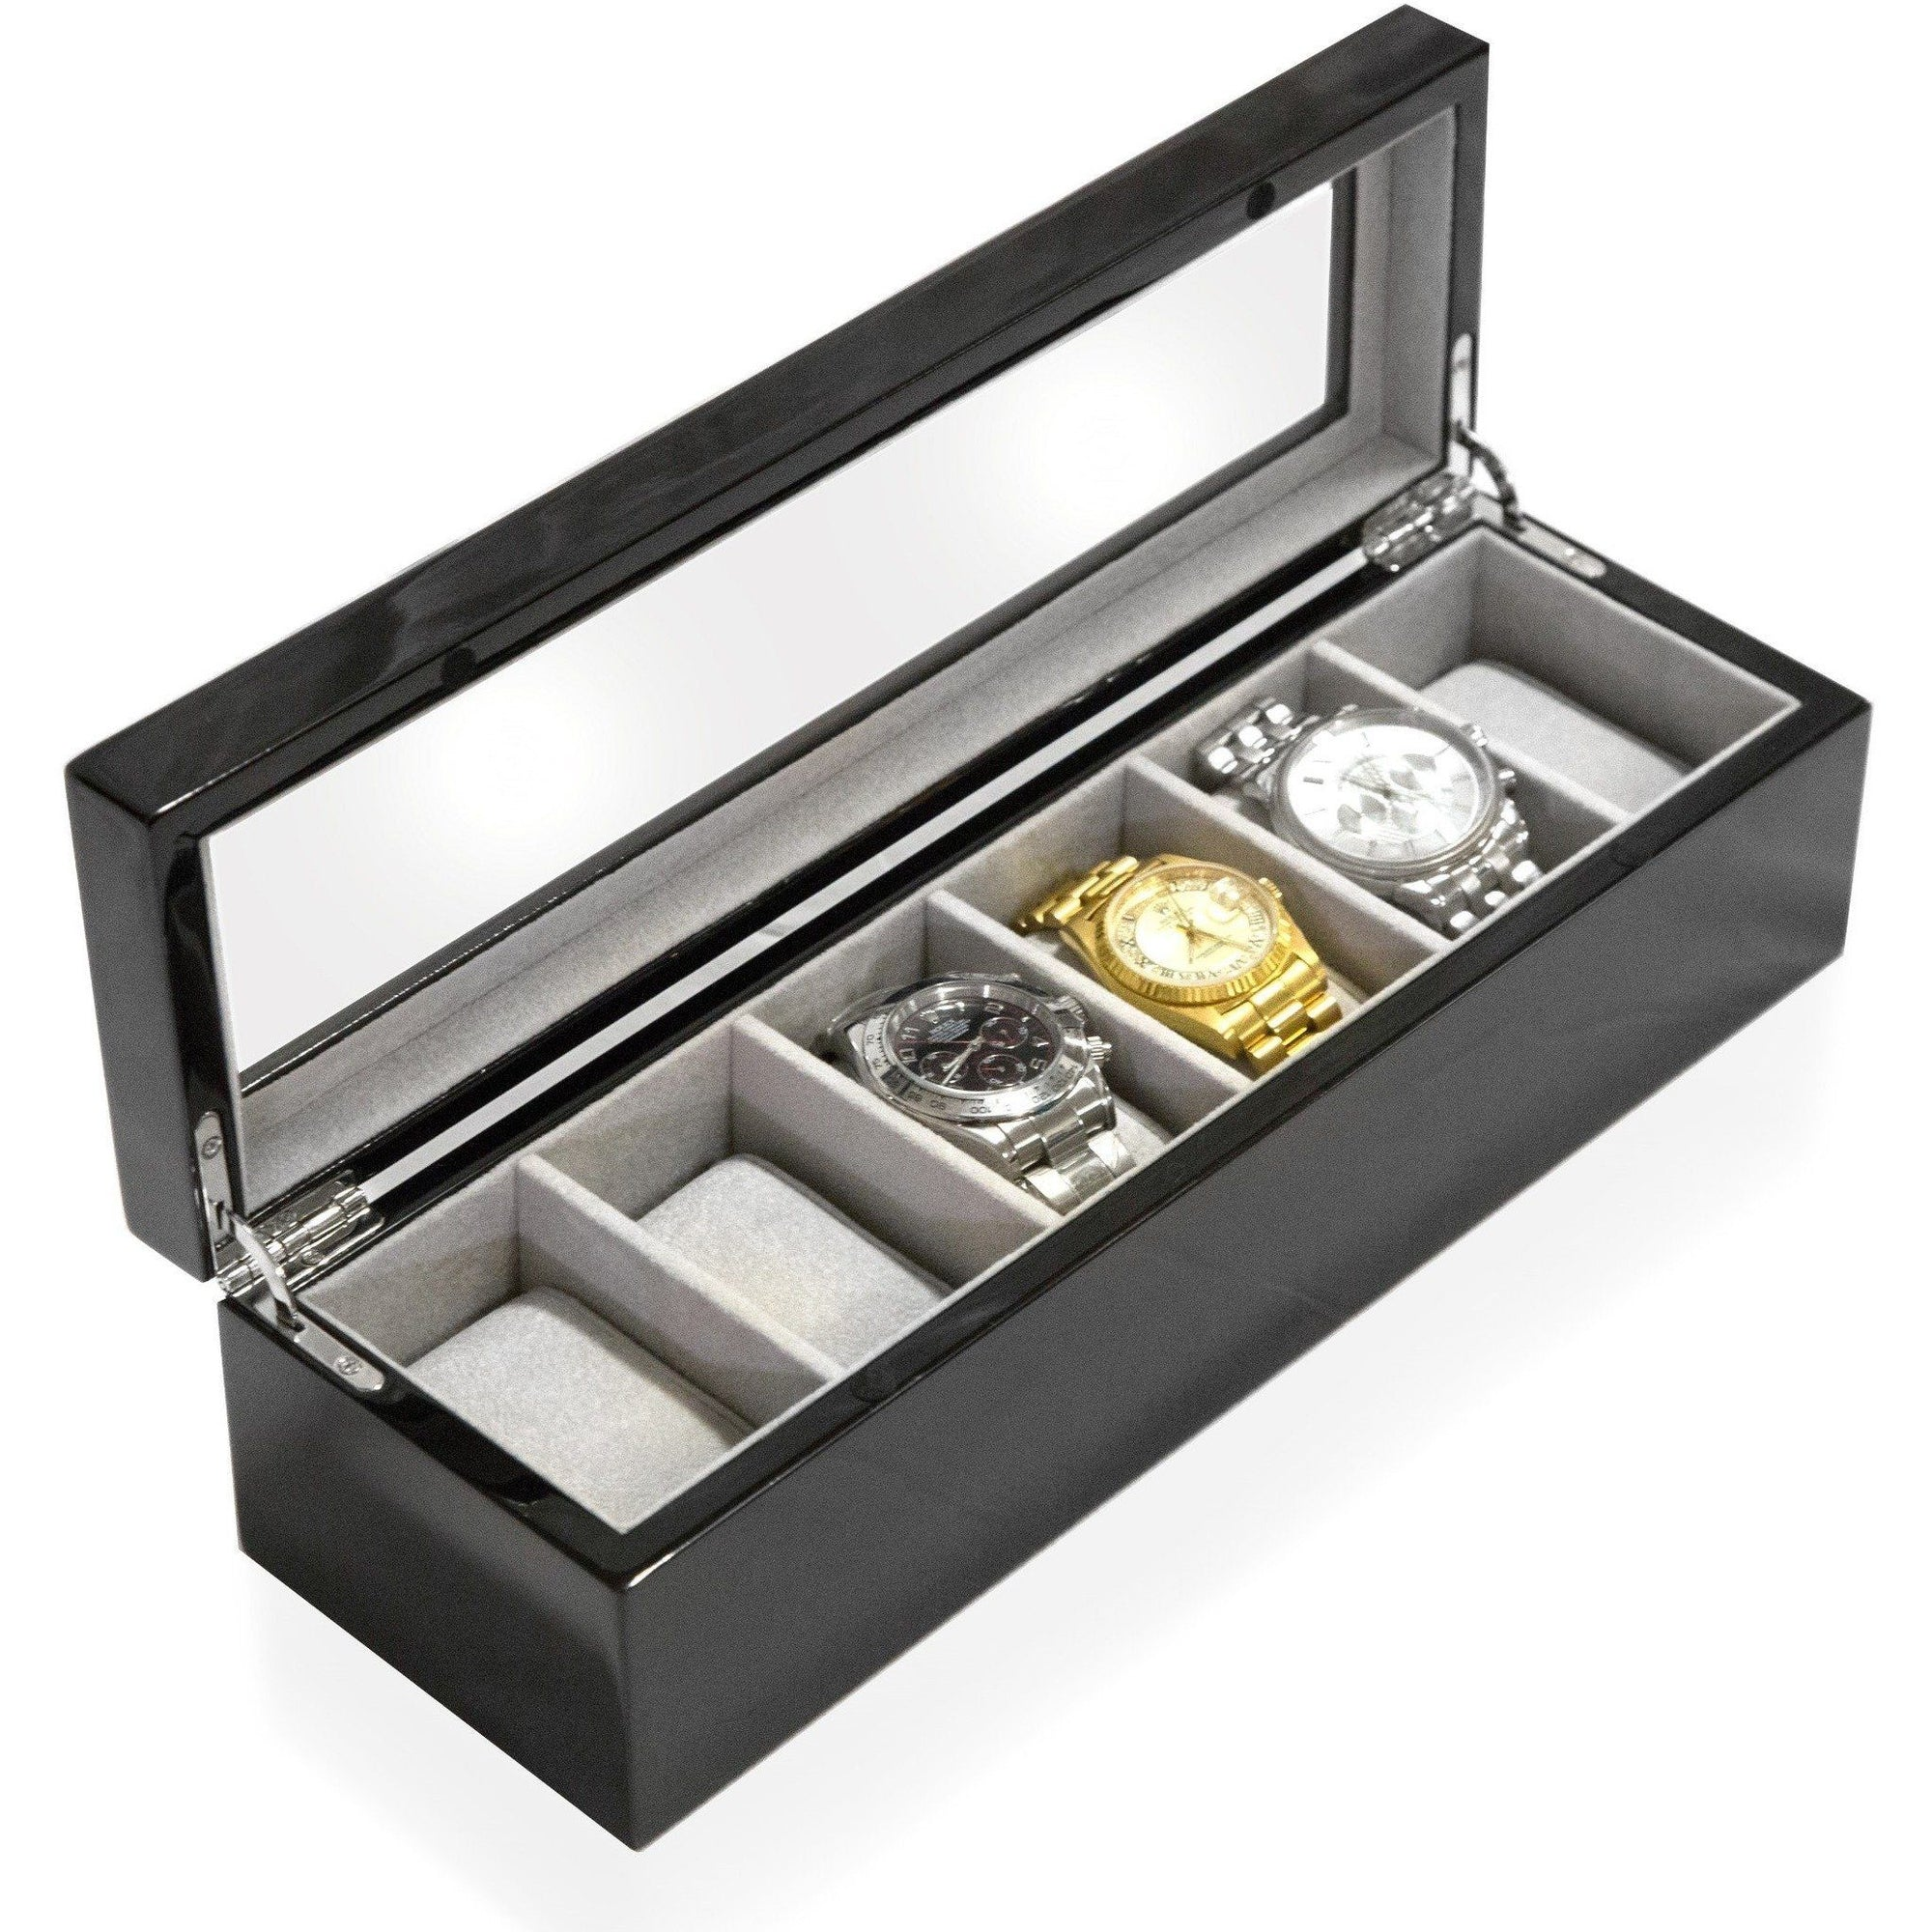 Long Watch Box With Glass, 6 Watch Box, Cuffed Watch Box, Clinks Australia Watch Box, Black Long Watch Box, Watch Boxes on Cuffed, Australia Watch Box, Watch Storage Box, Watch Display Box, 6 Slots Watch Box, Watch Boxes for 6